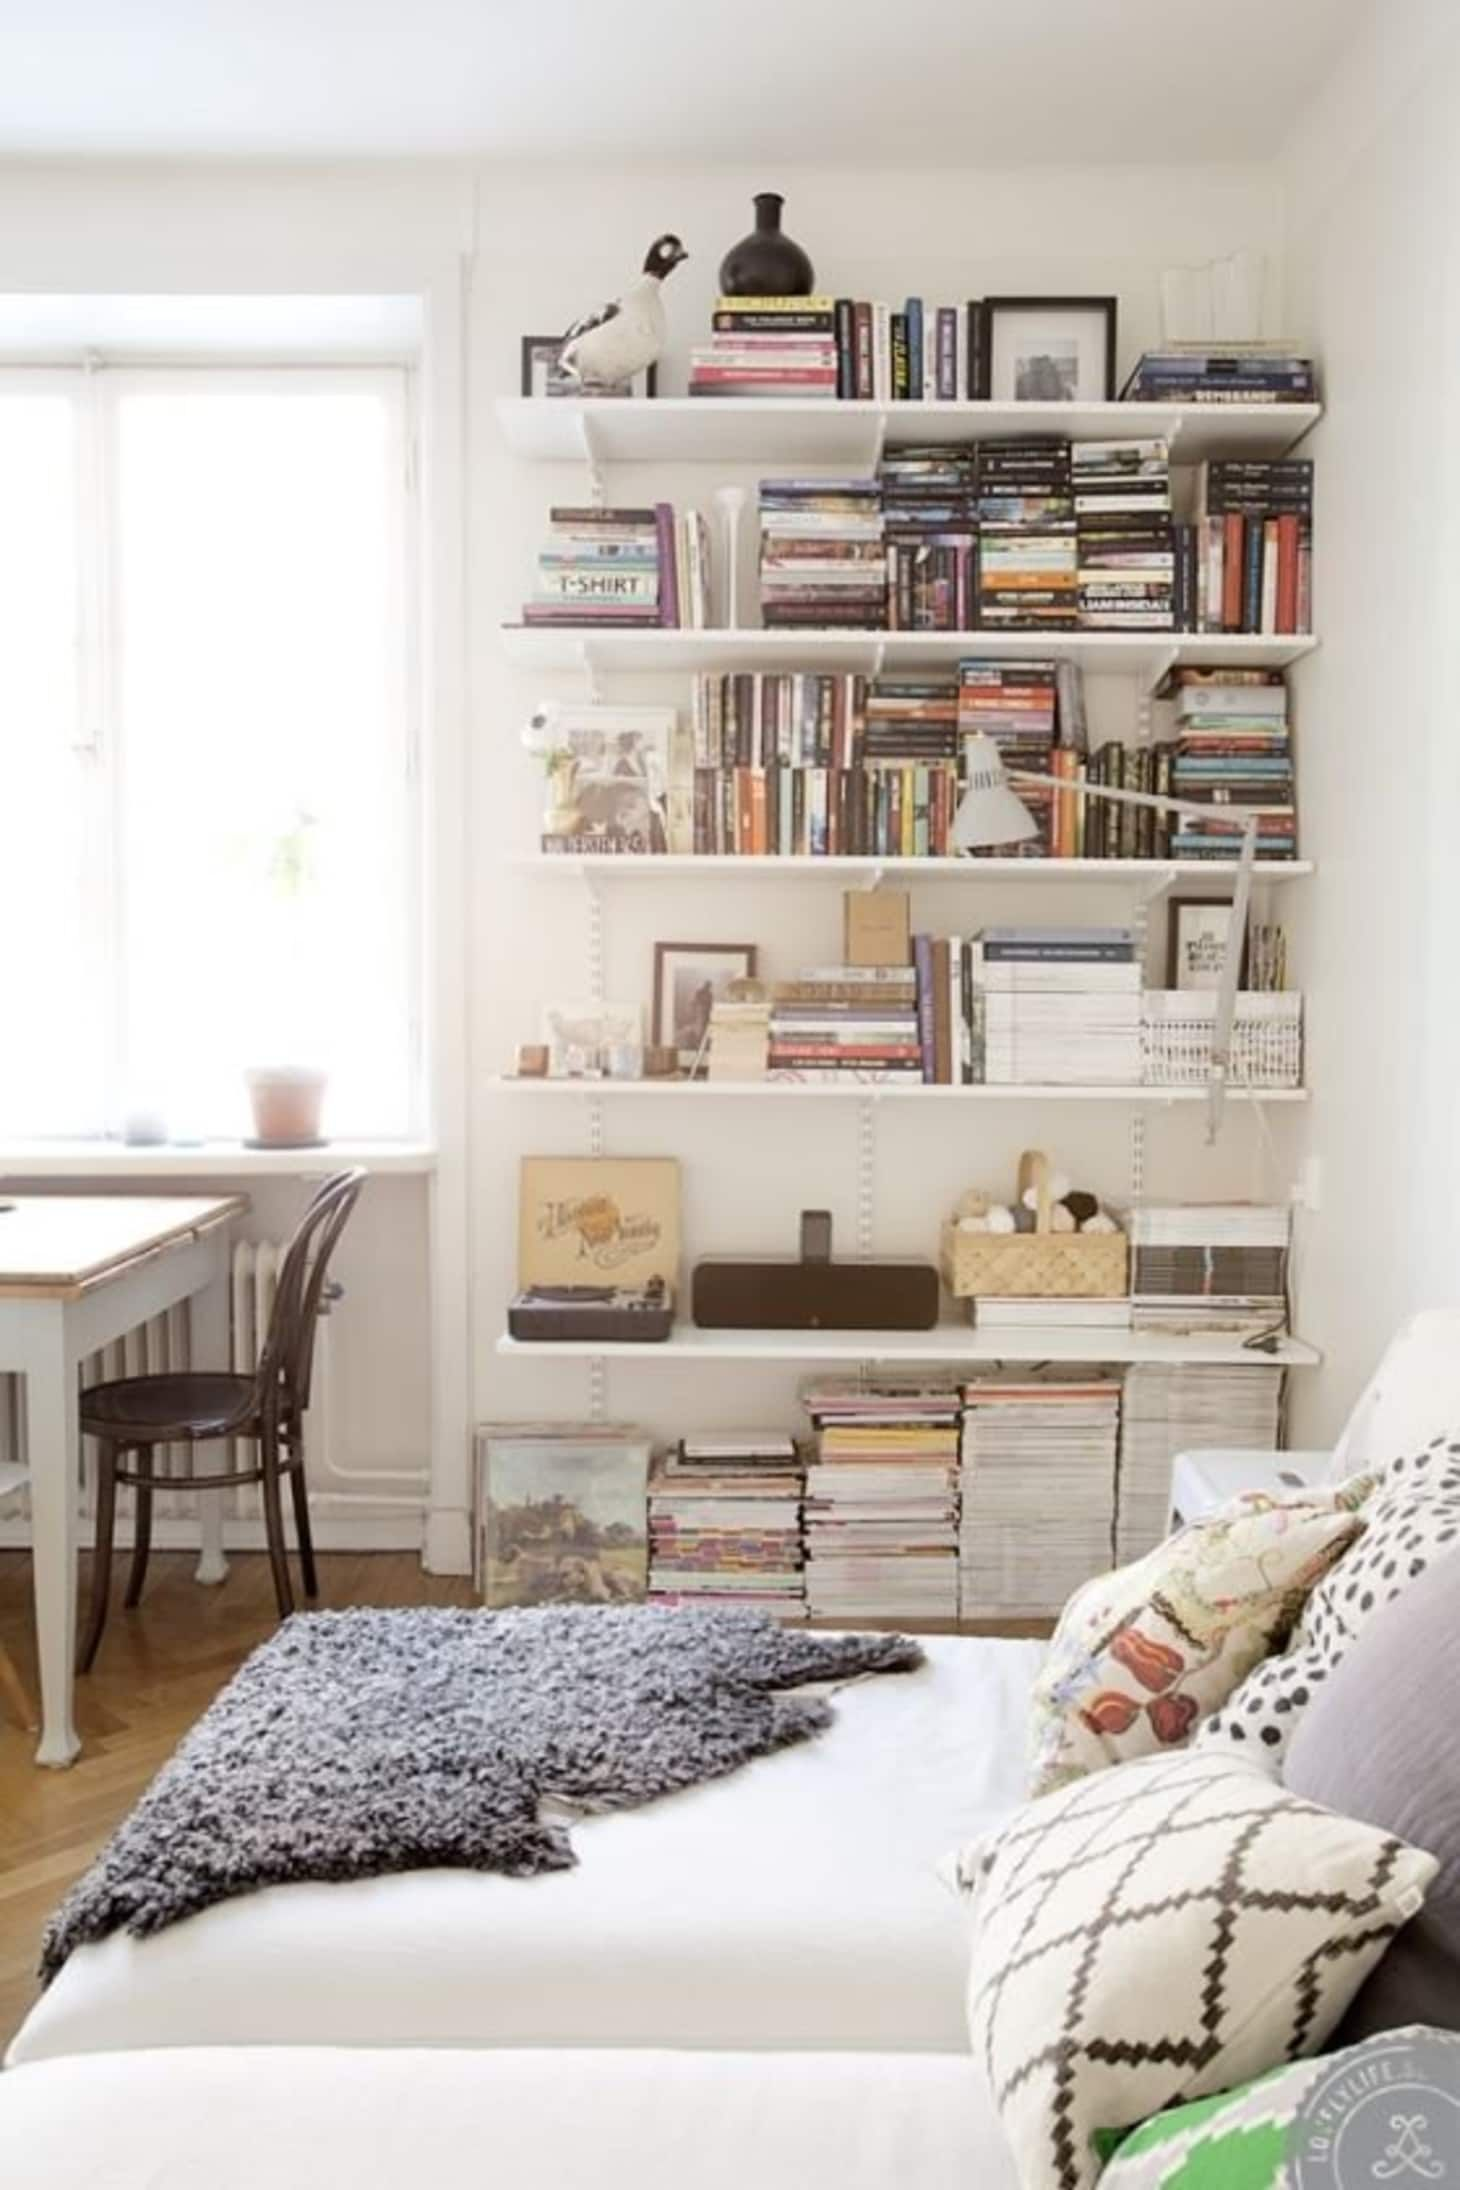 Library Room Ideas For Small Spaces: Small Space Secrets: Swap Out Your Bookcases For Wall